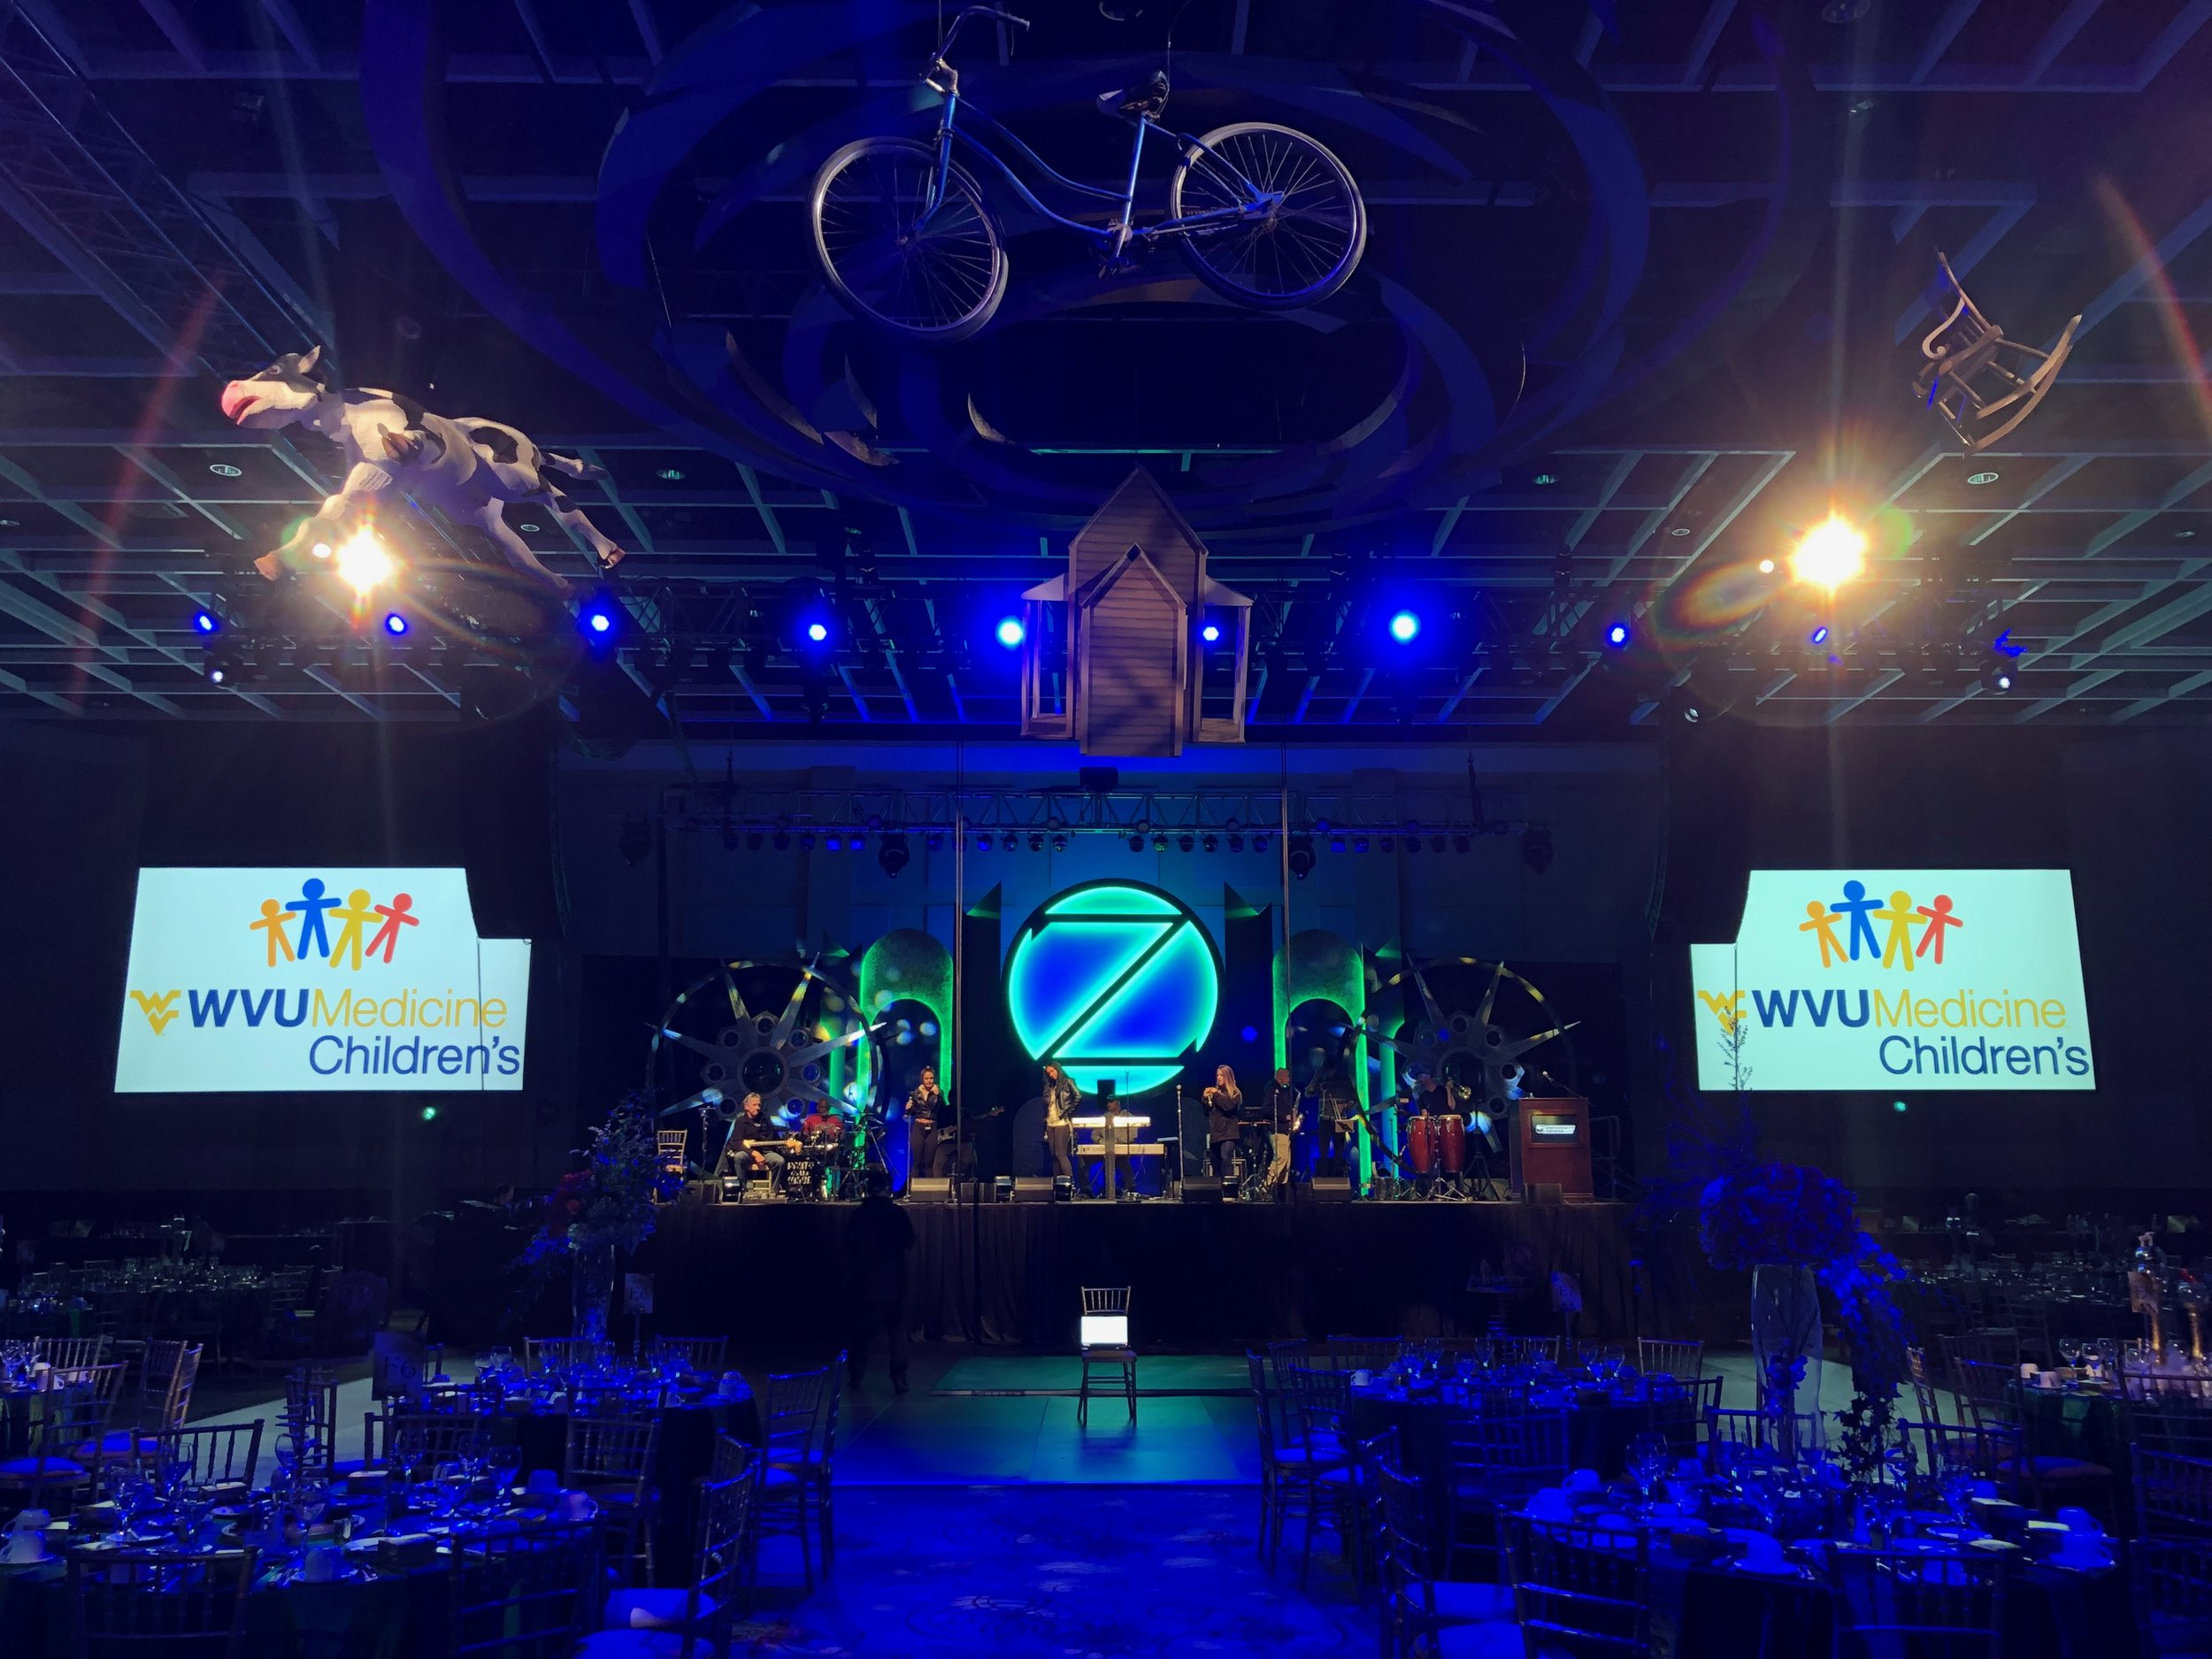 WVU Medicine Children's Gala 2019 - Compass ProductionsAssistant Lighting Designer